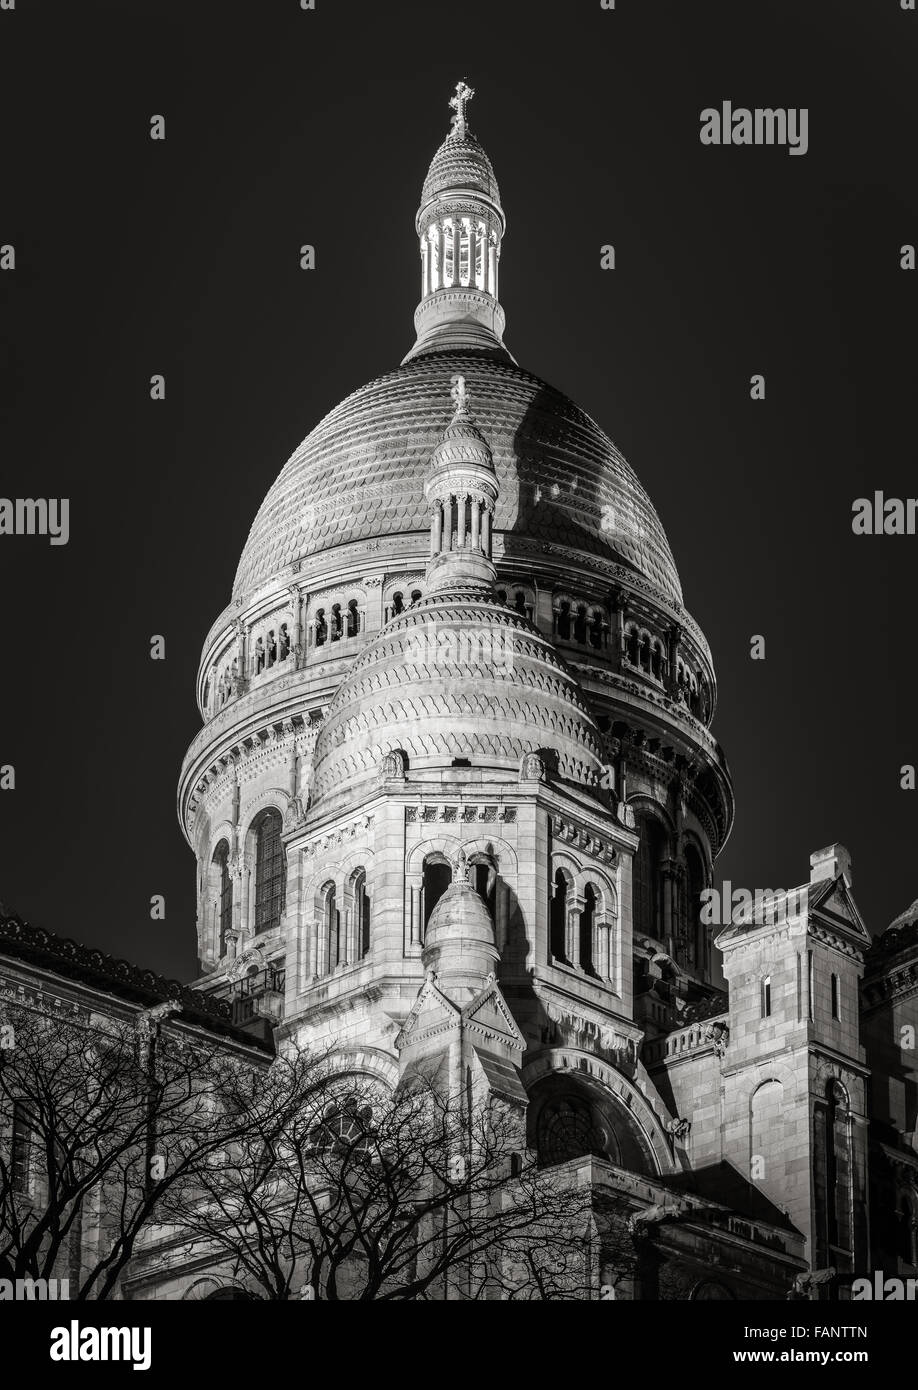 Black & White view of the domes of Sacre Coeur Basilica (Sacred Heart)  illuminated at night in Montmartre, - Stock Image